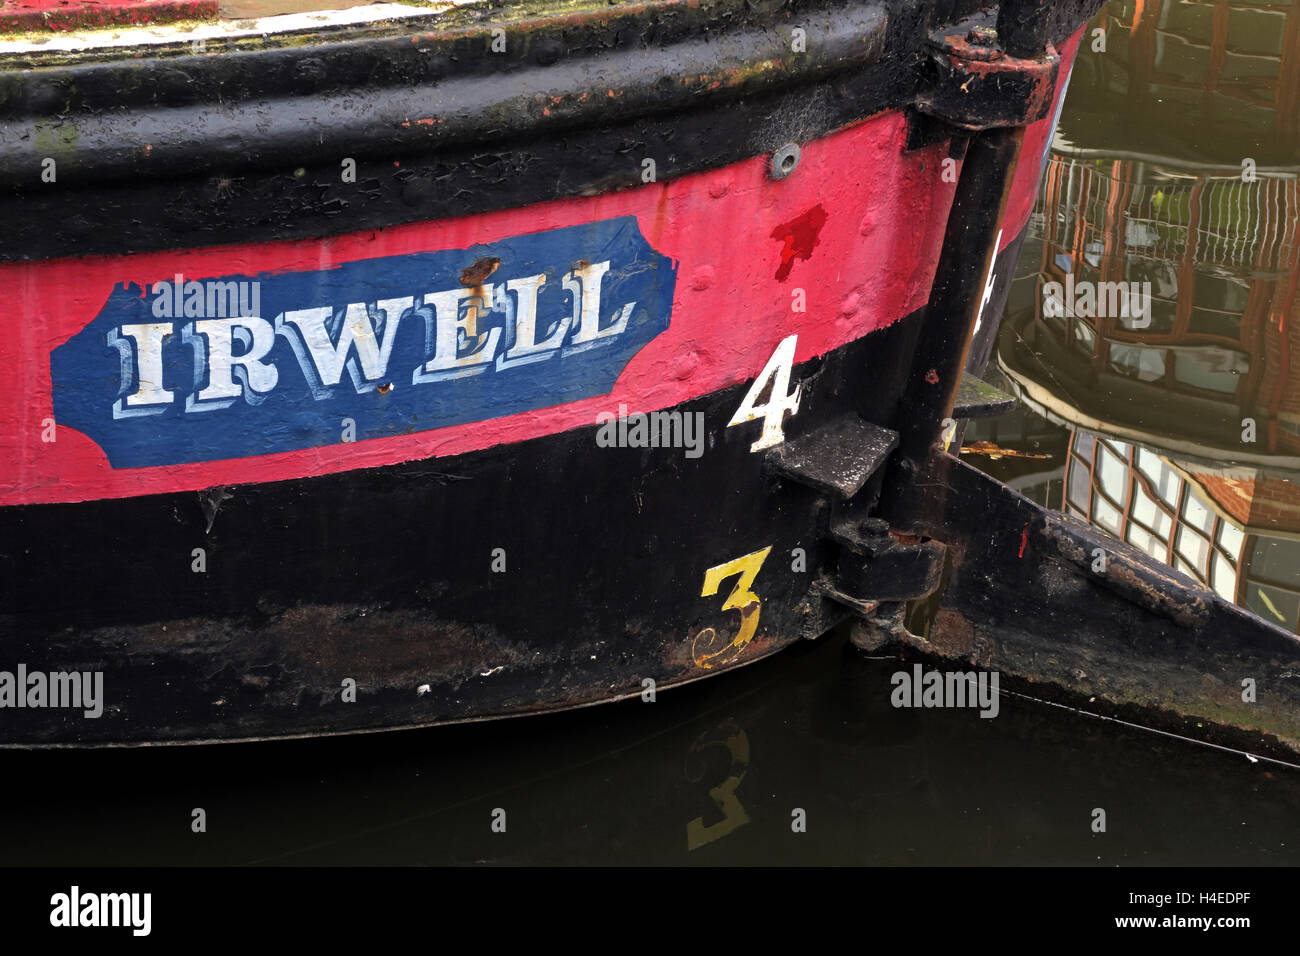 Barge,Castlefield,water,waterway,waterways,short,boat,Castlefields,Manchester,England,UK,history,butty,Bridgewater,Canal,canals,canalboat,trust,British,conservation,area,inner,city,centre,inner-city,center,Leeds & Liverpool,British waterways,GoTonySmith,@HotpixUK,Tony,Smith,UK,GB,Great,Britain,United,Kingdom,English,British,England,Buy Pictures of,Buy Images Of,Images of,Stock Images,Tony Smith,United Kingdom,Great Britain,British Isles